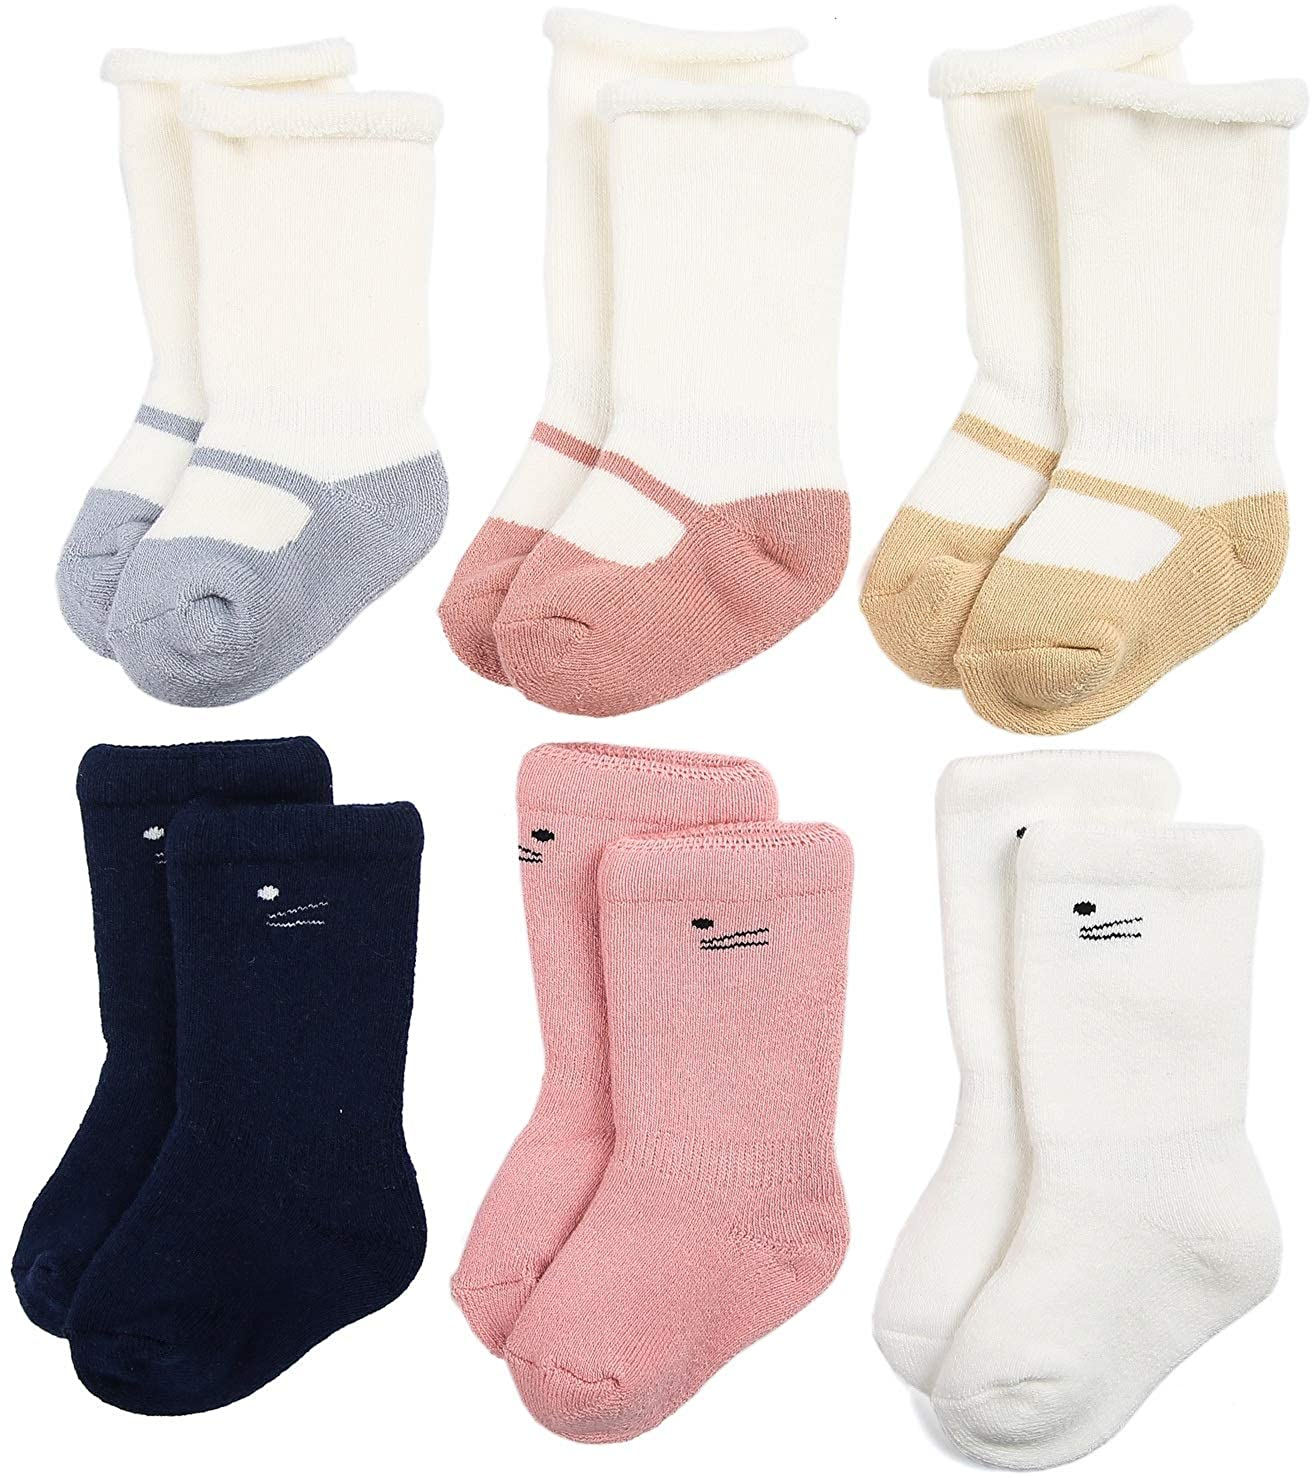 Zaples Unisex Baby Socks 3/6 Pack Soft Cotton Warm Winter Infant & Toddler Socks BSK1701W